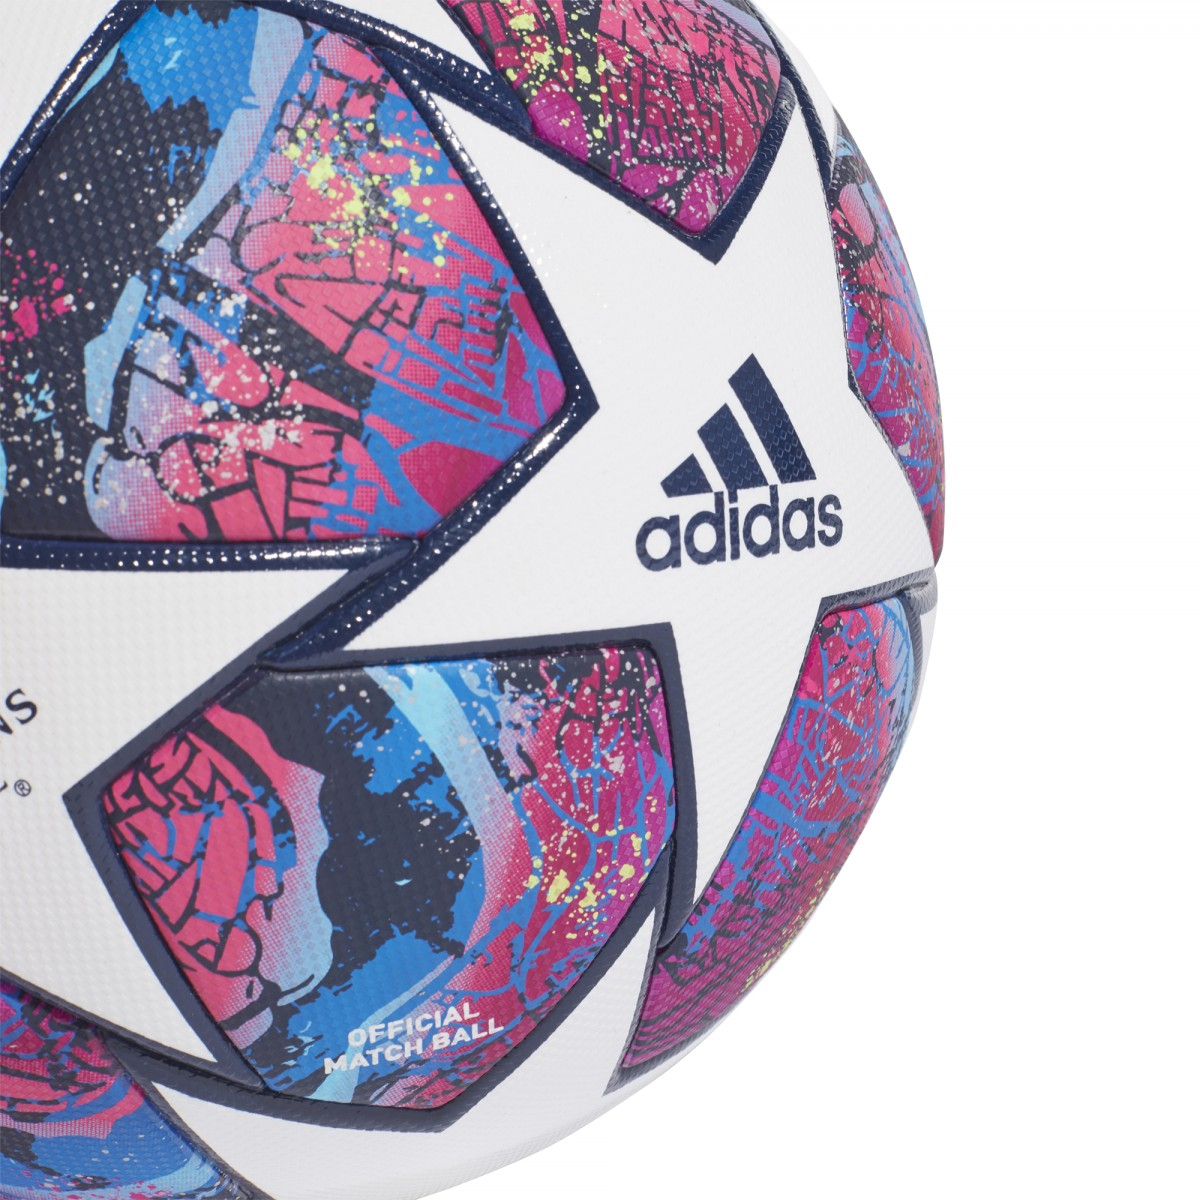 adidas Champions League Finale Pro Fußball